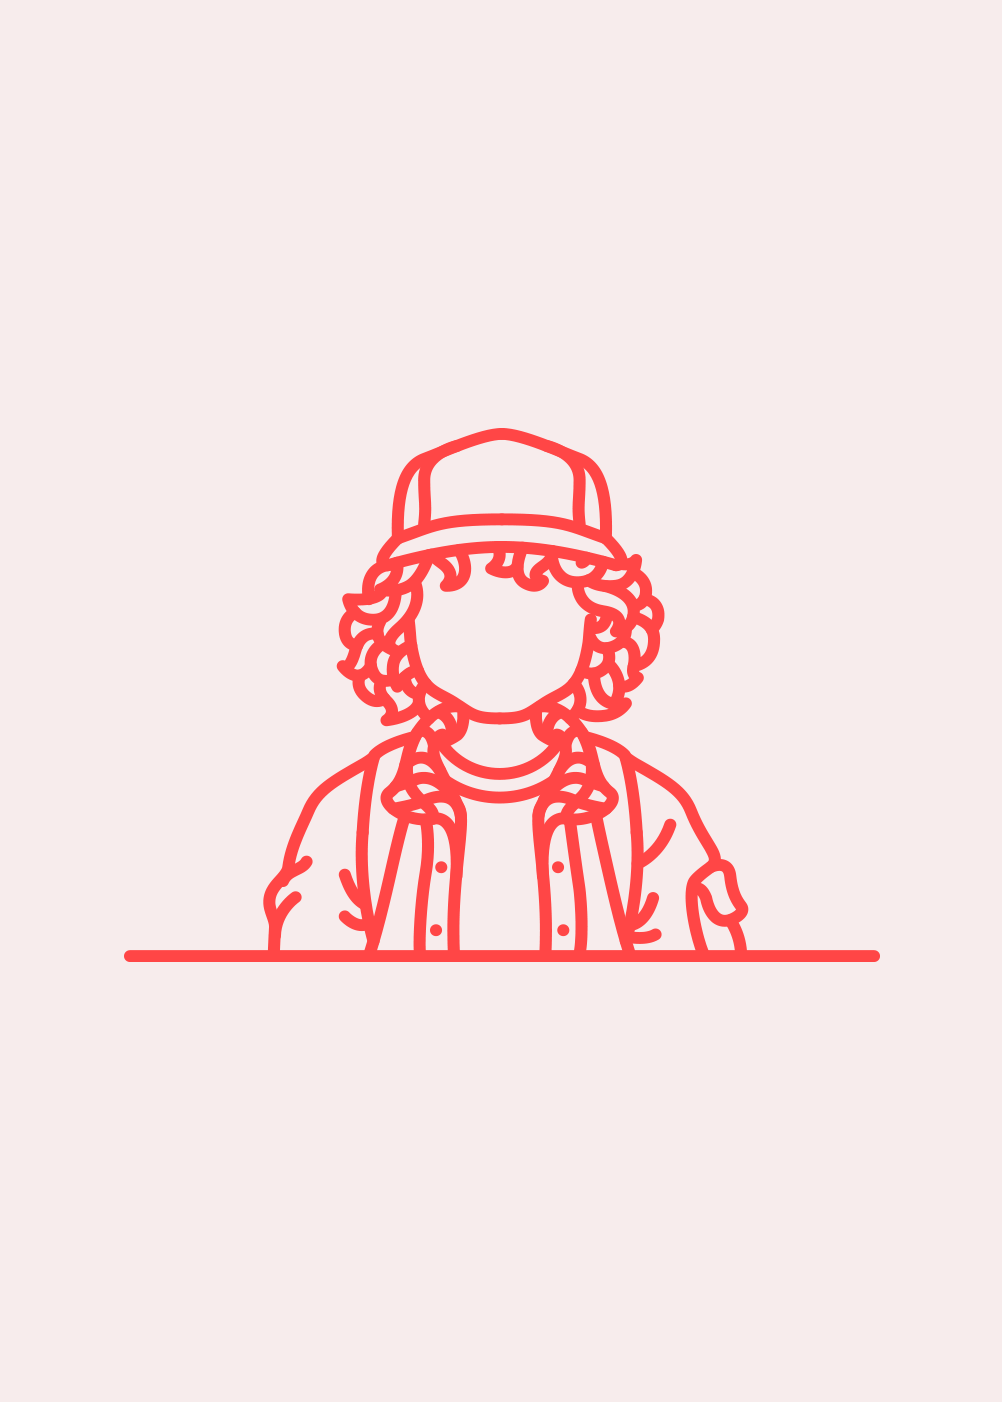 Stranger things 3 quotes clipart clip freeuse Stranger Things: Dustin Henderson | Art Ideas in 2019 ... clip freeuse